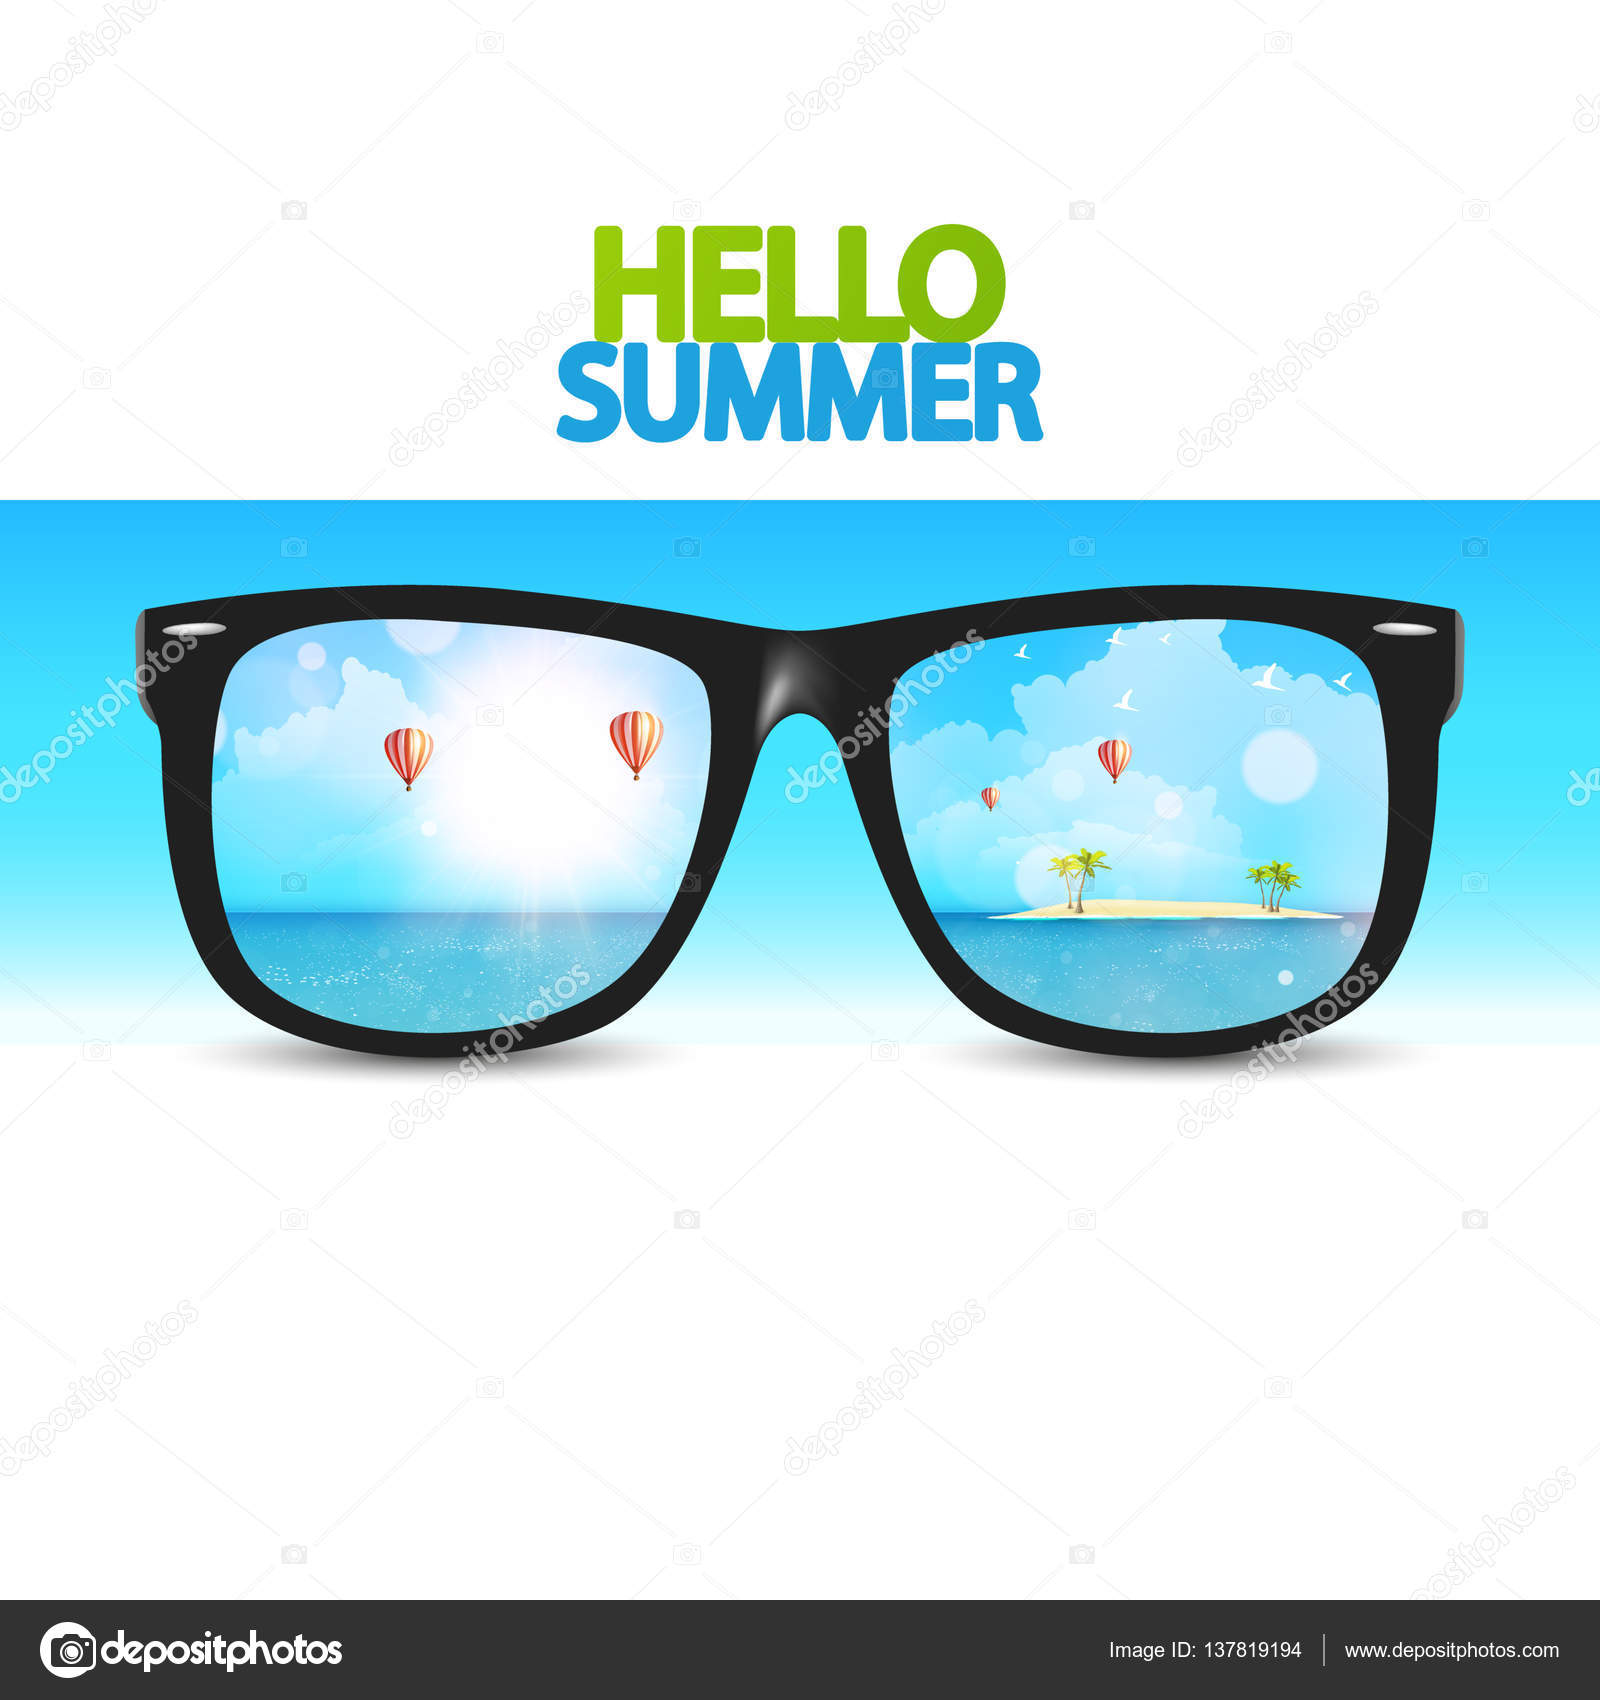 Superieur Hello Summer Poster With Eyeglasses U2014 Stock Vector